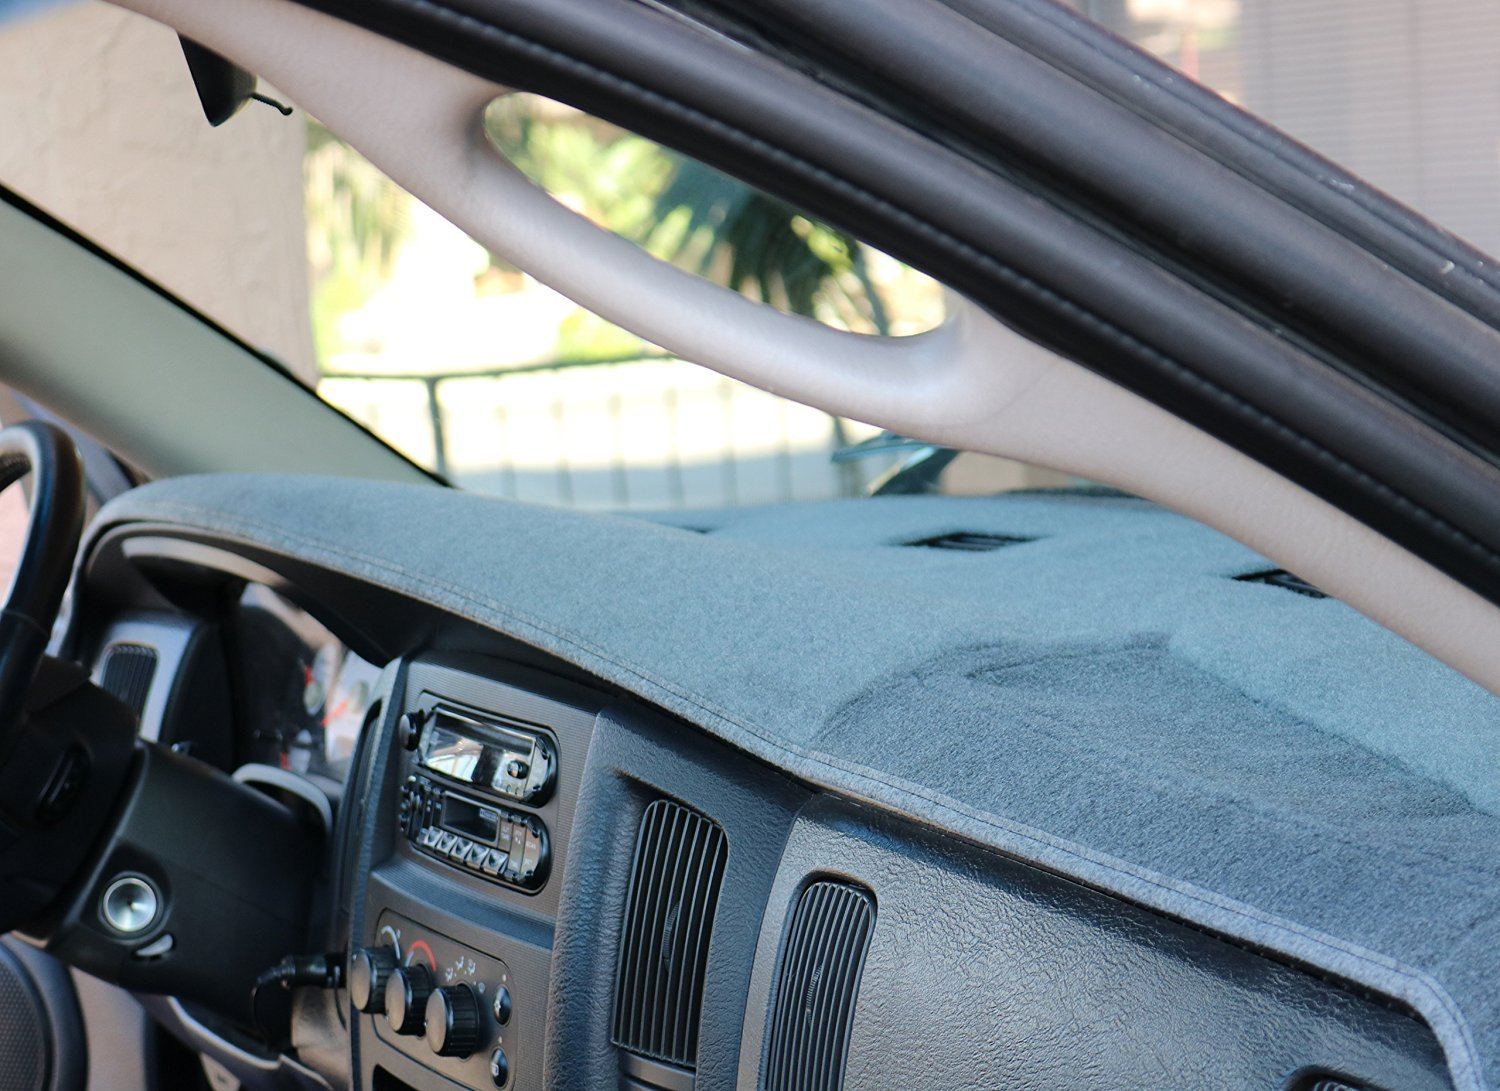 Angry Elephant Cinder Carpet Dashboard Cover - 1998-2001 Dodge Ram all models. Custom Fit Keeps Vents & Airbags Unobstructed, Easy Installation, Won't Break Headlights or Climate Sensors Won' t Break Headlights or Climate Sensors